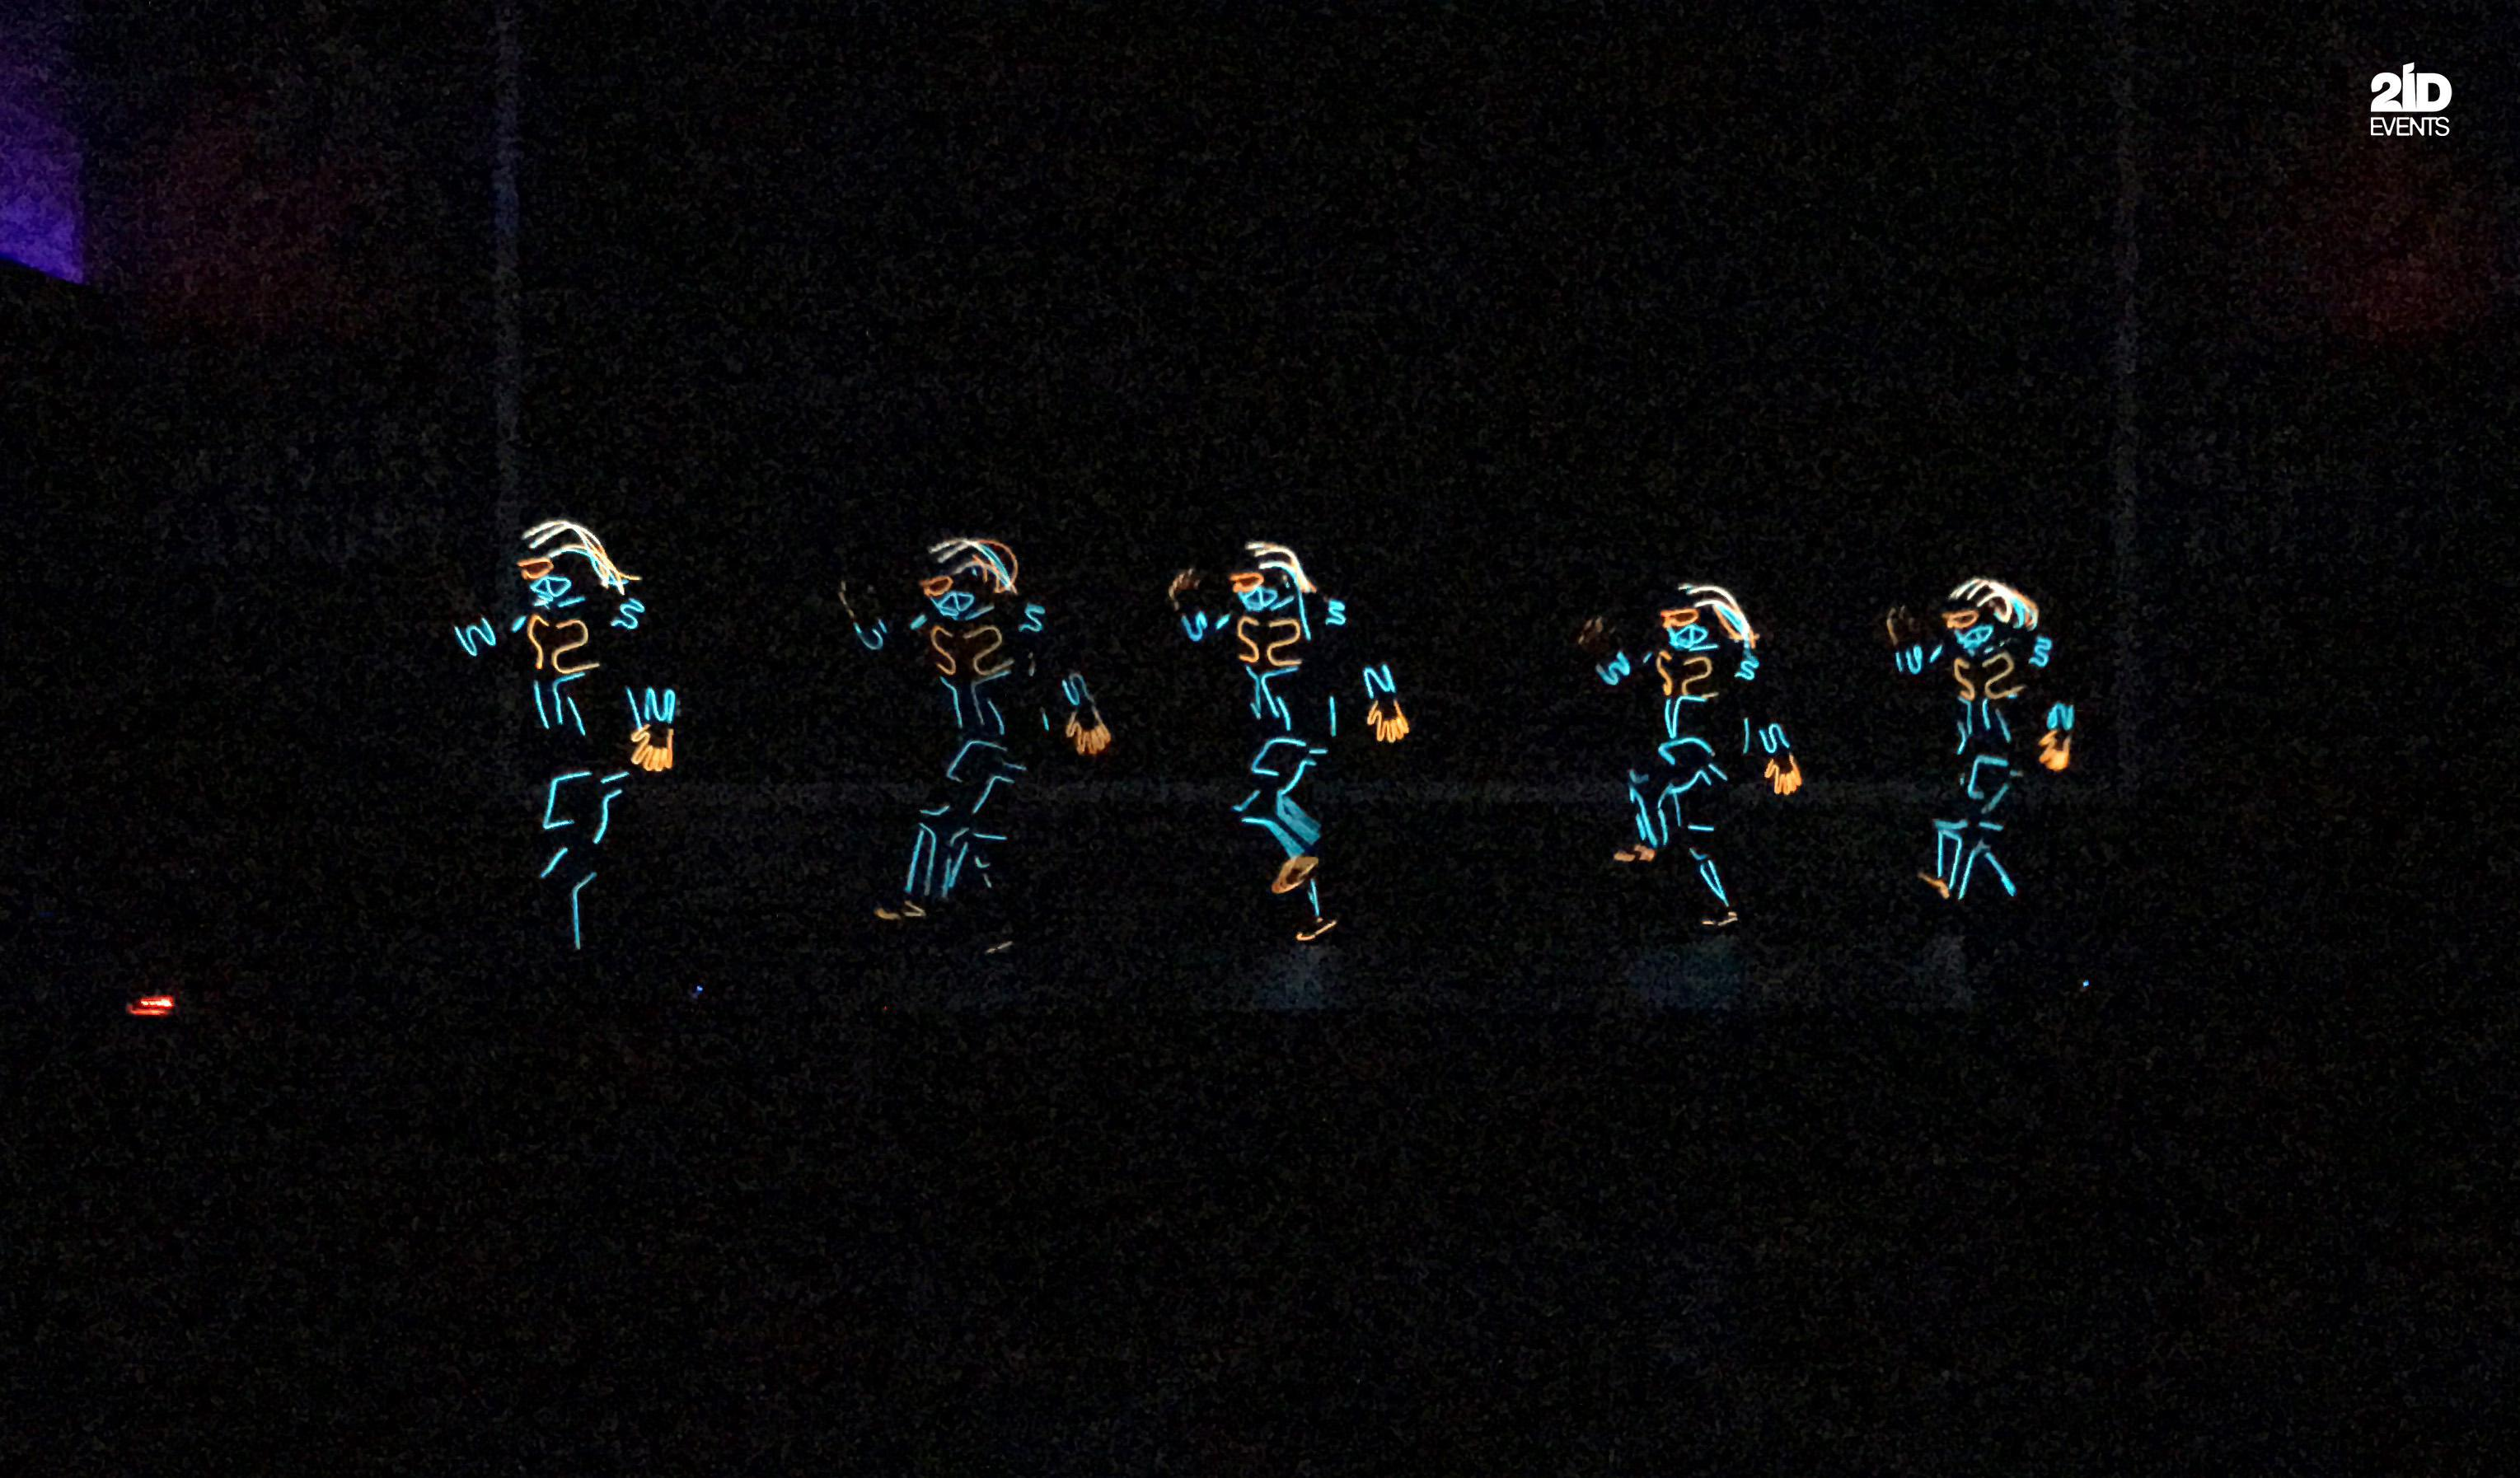 LED ROBOTS SHOW FOR ANNUAL EVENT